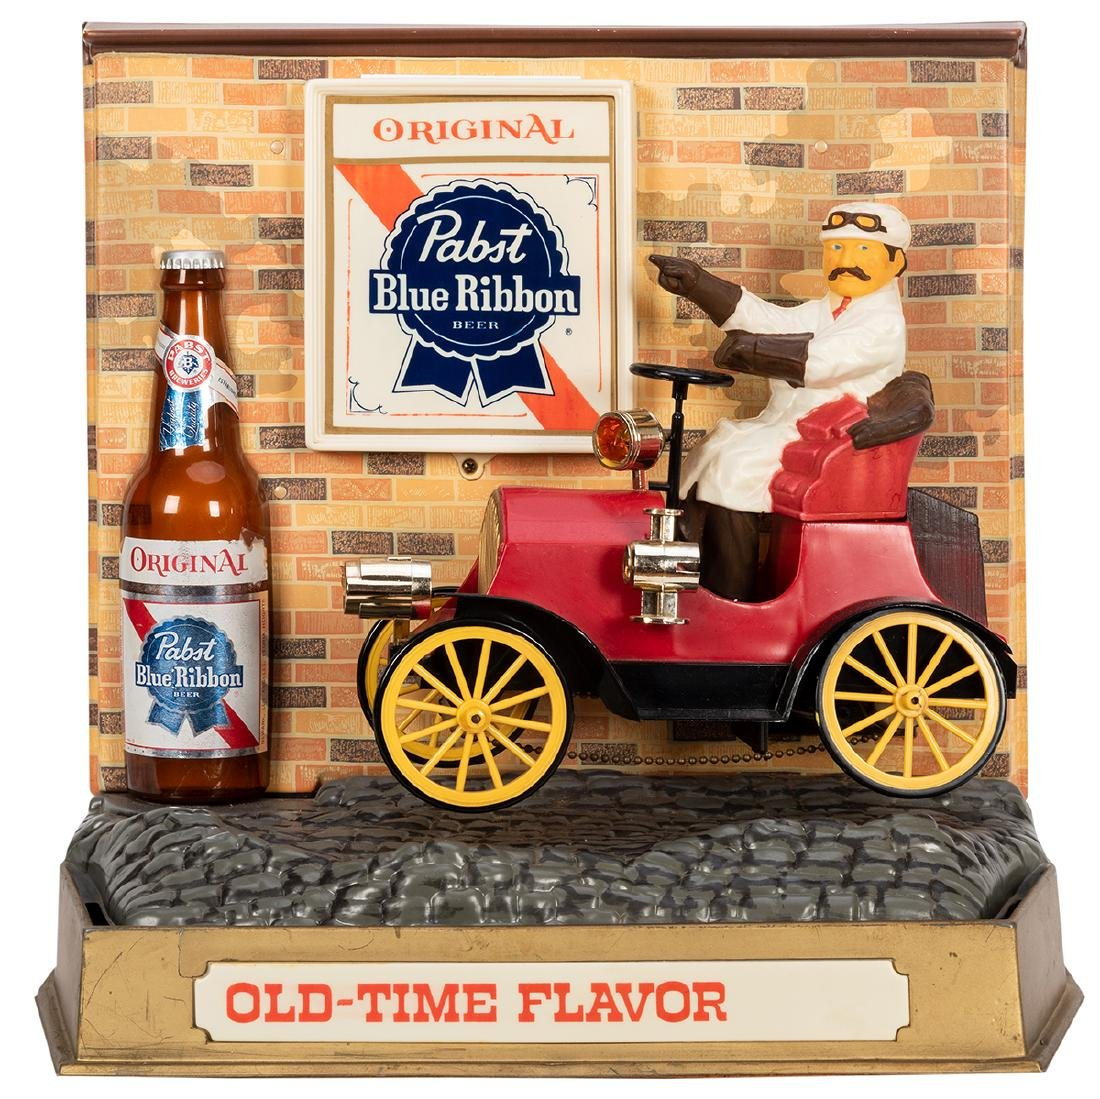 Pabst Blue Ribbon Mechanical Moving Car Countertop